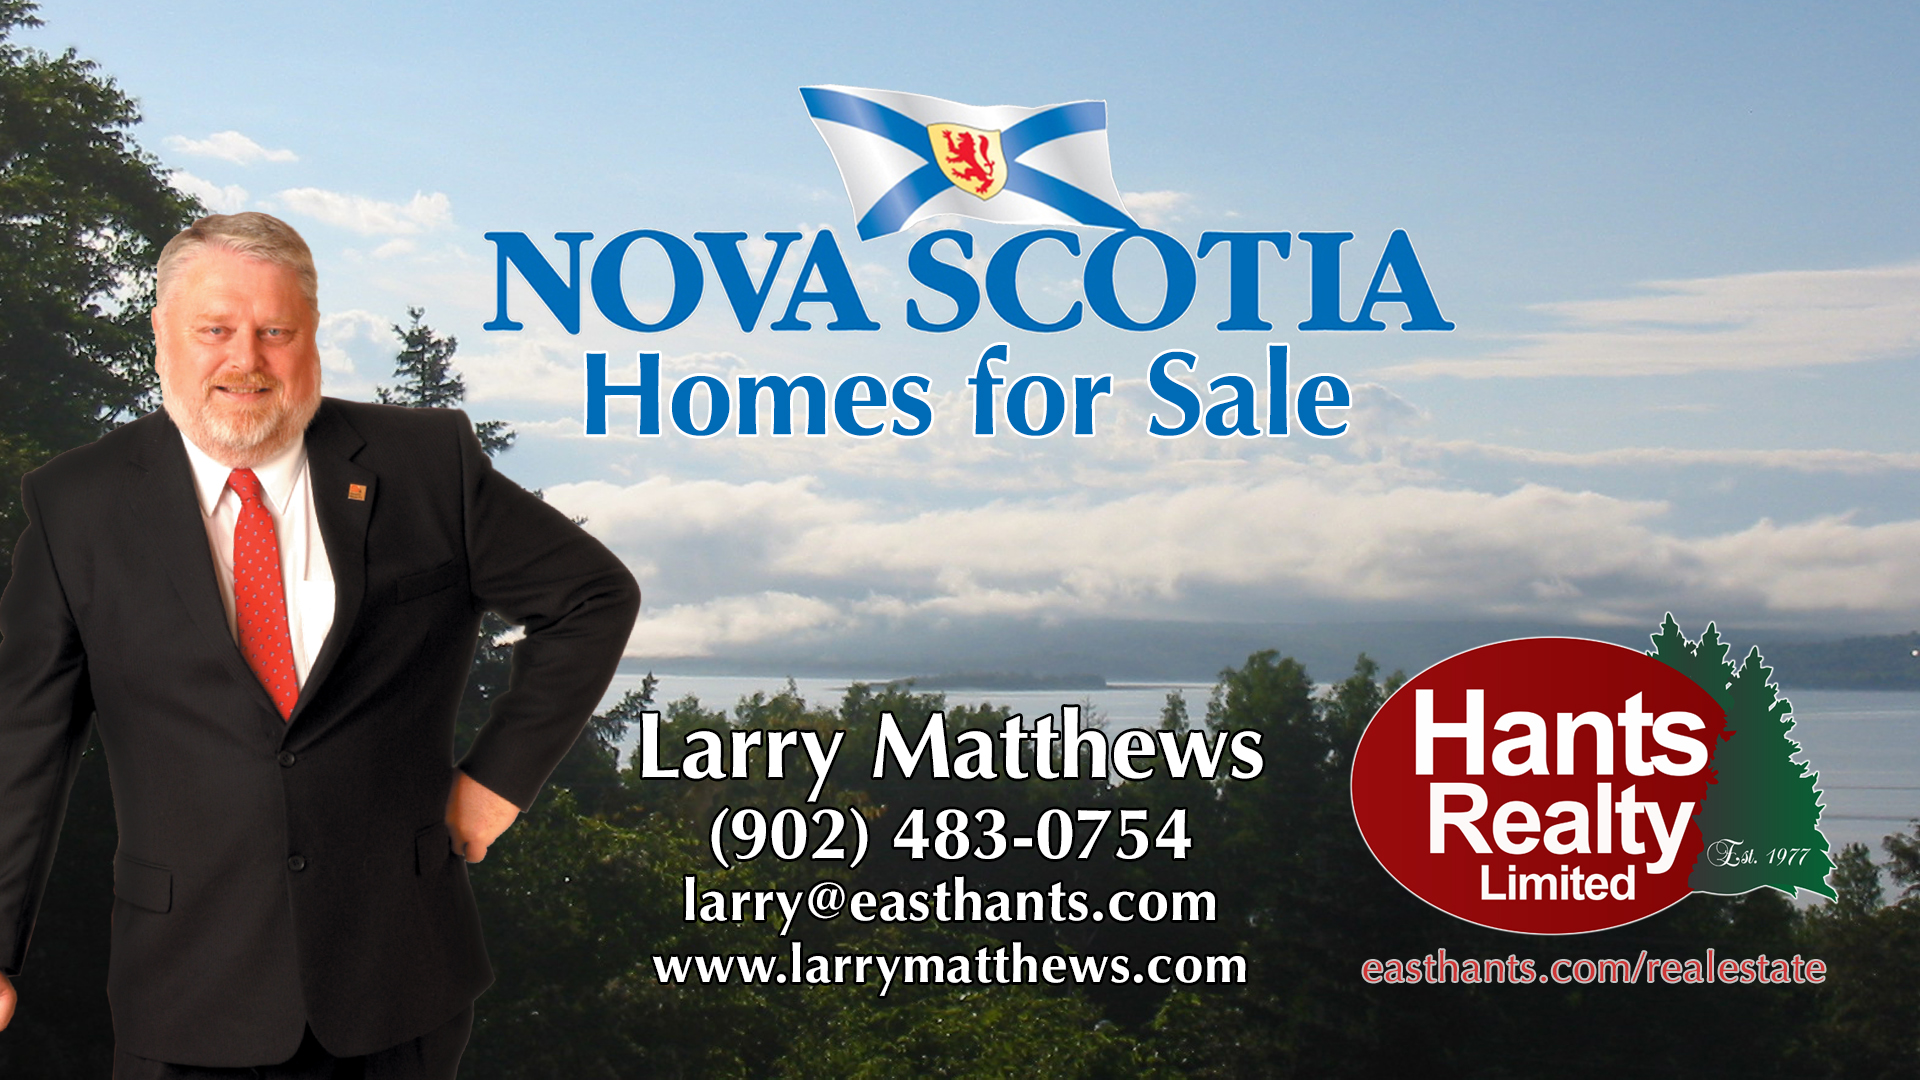 Larry Matthews Hants Realty